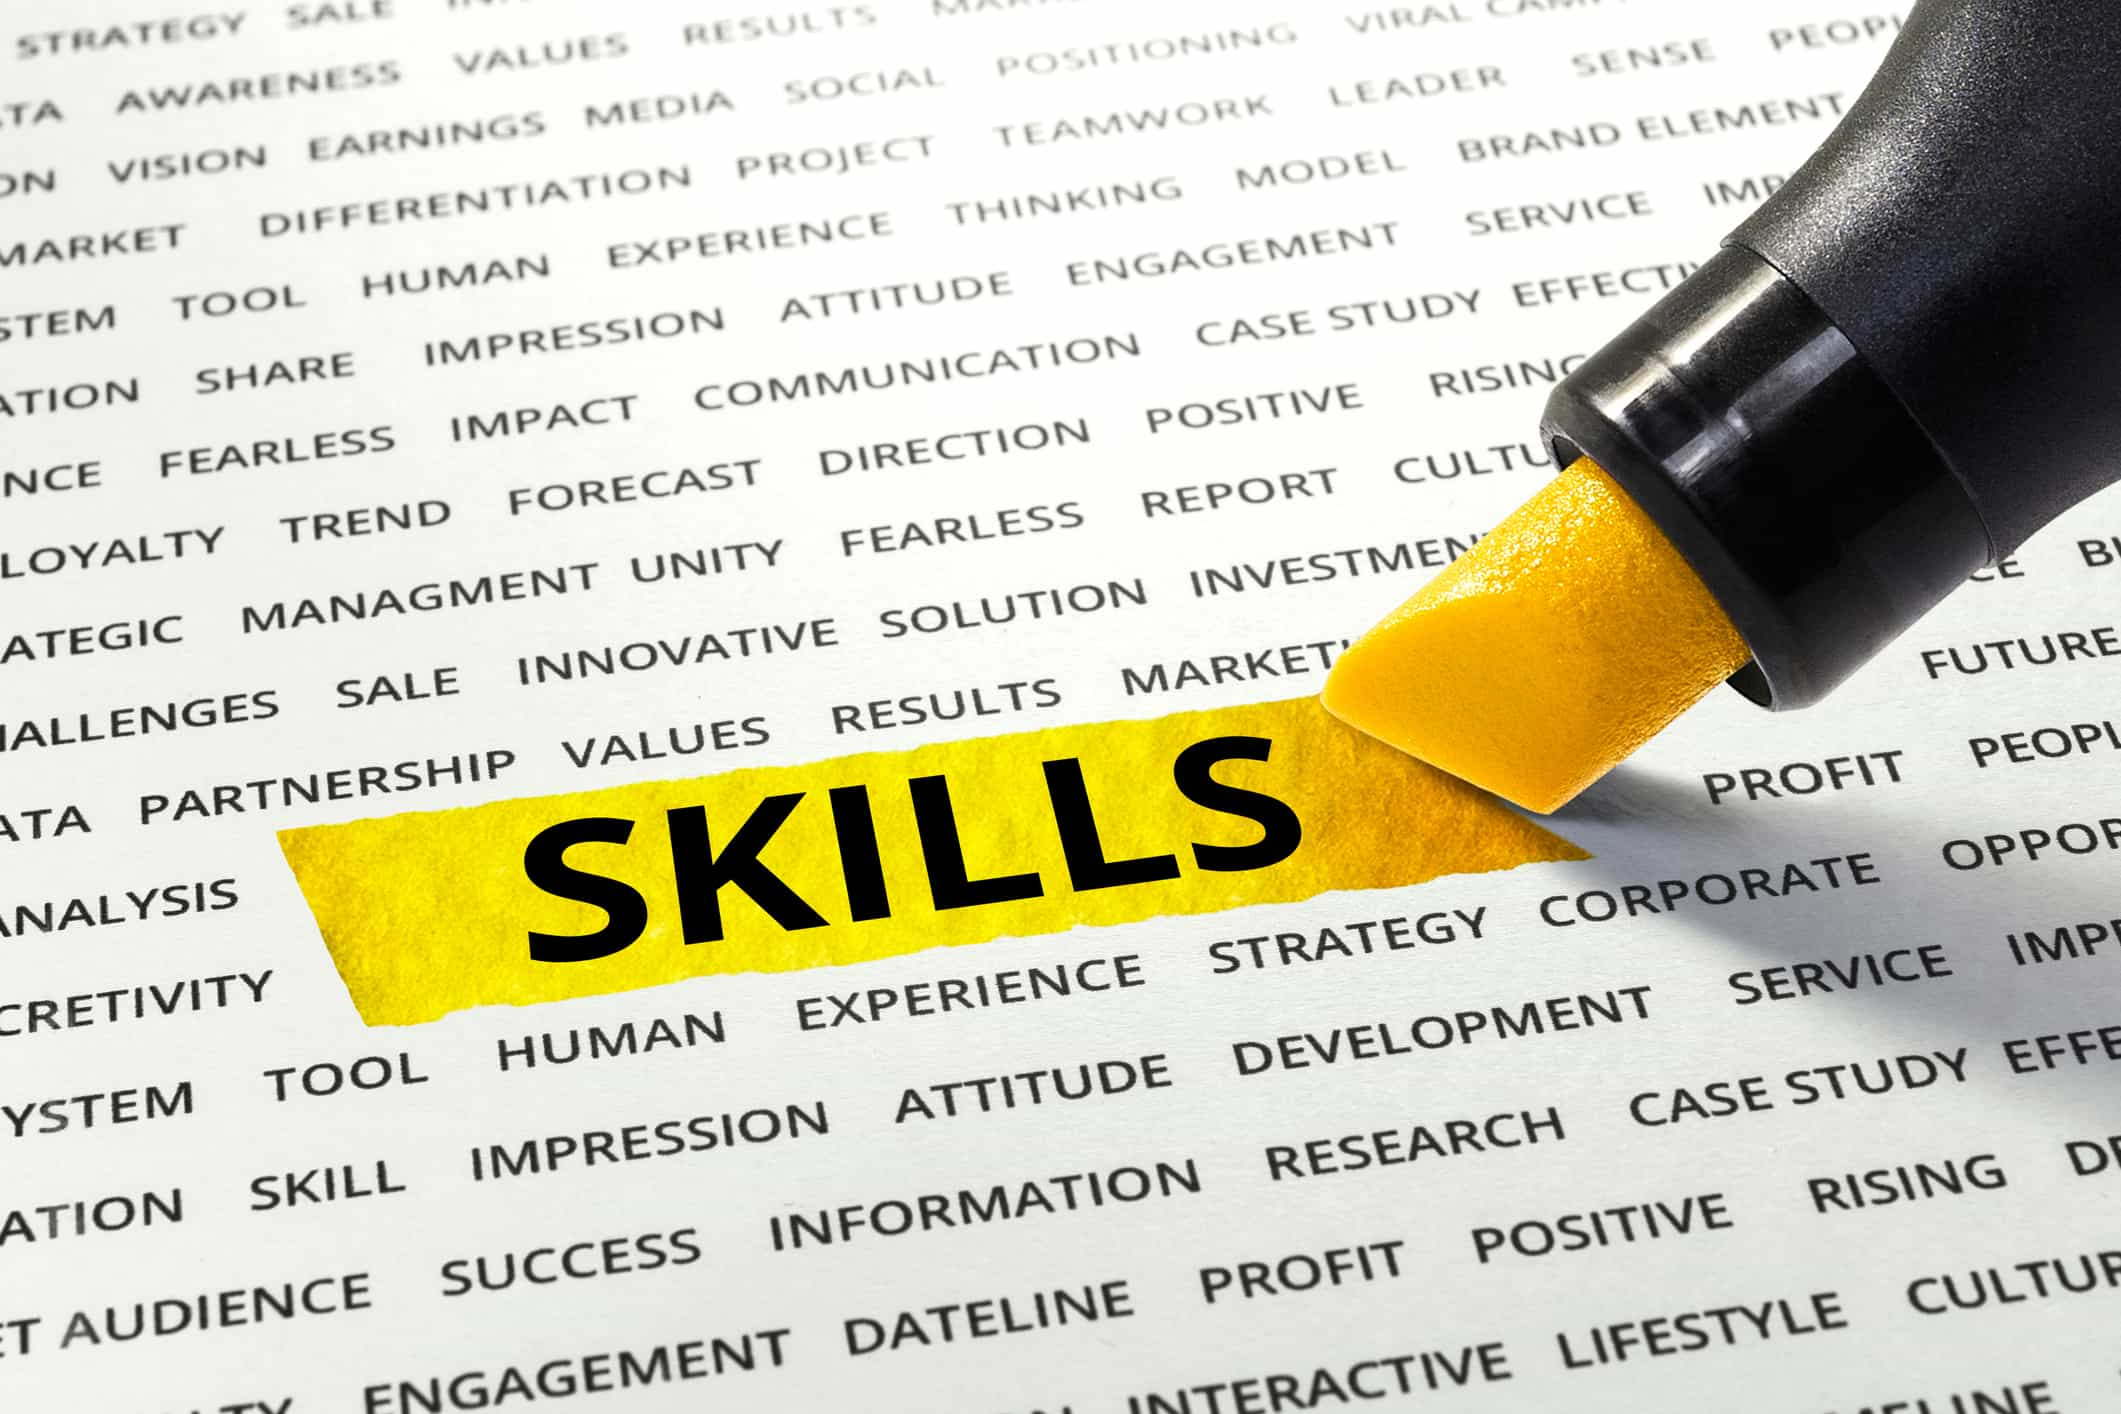 Tips for success in a competitive job market